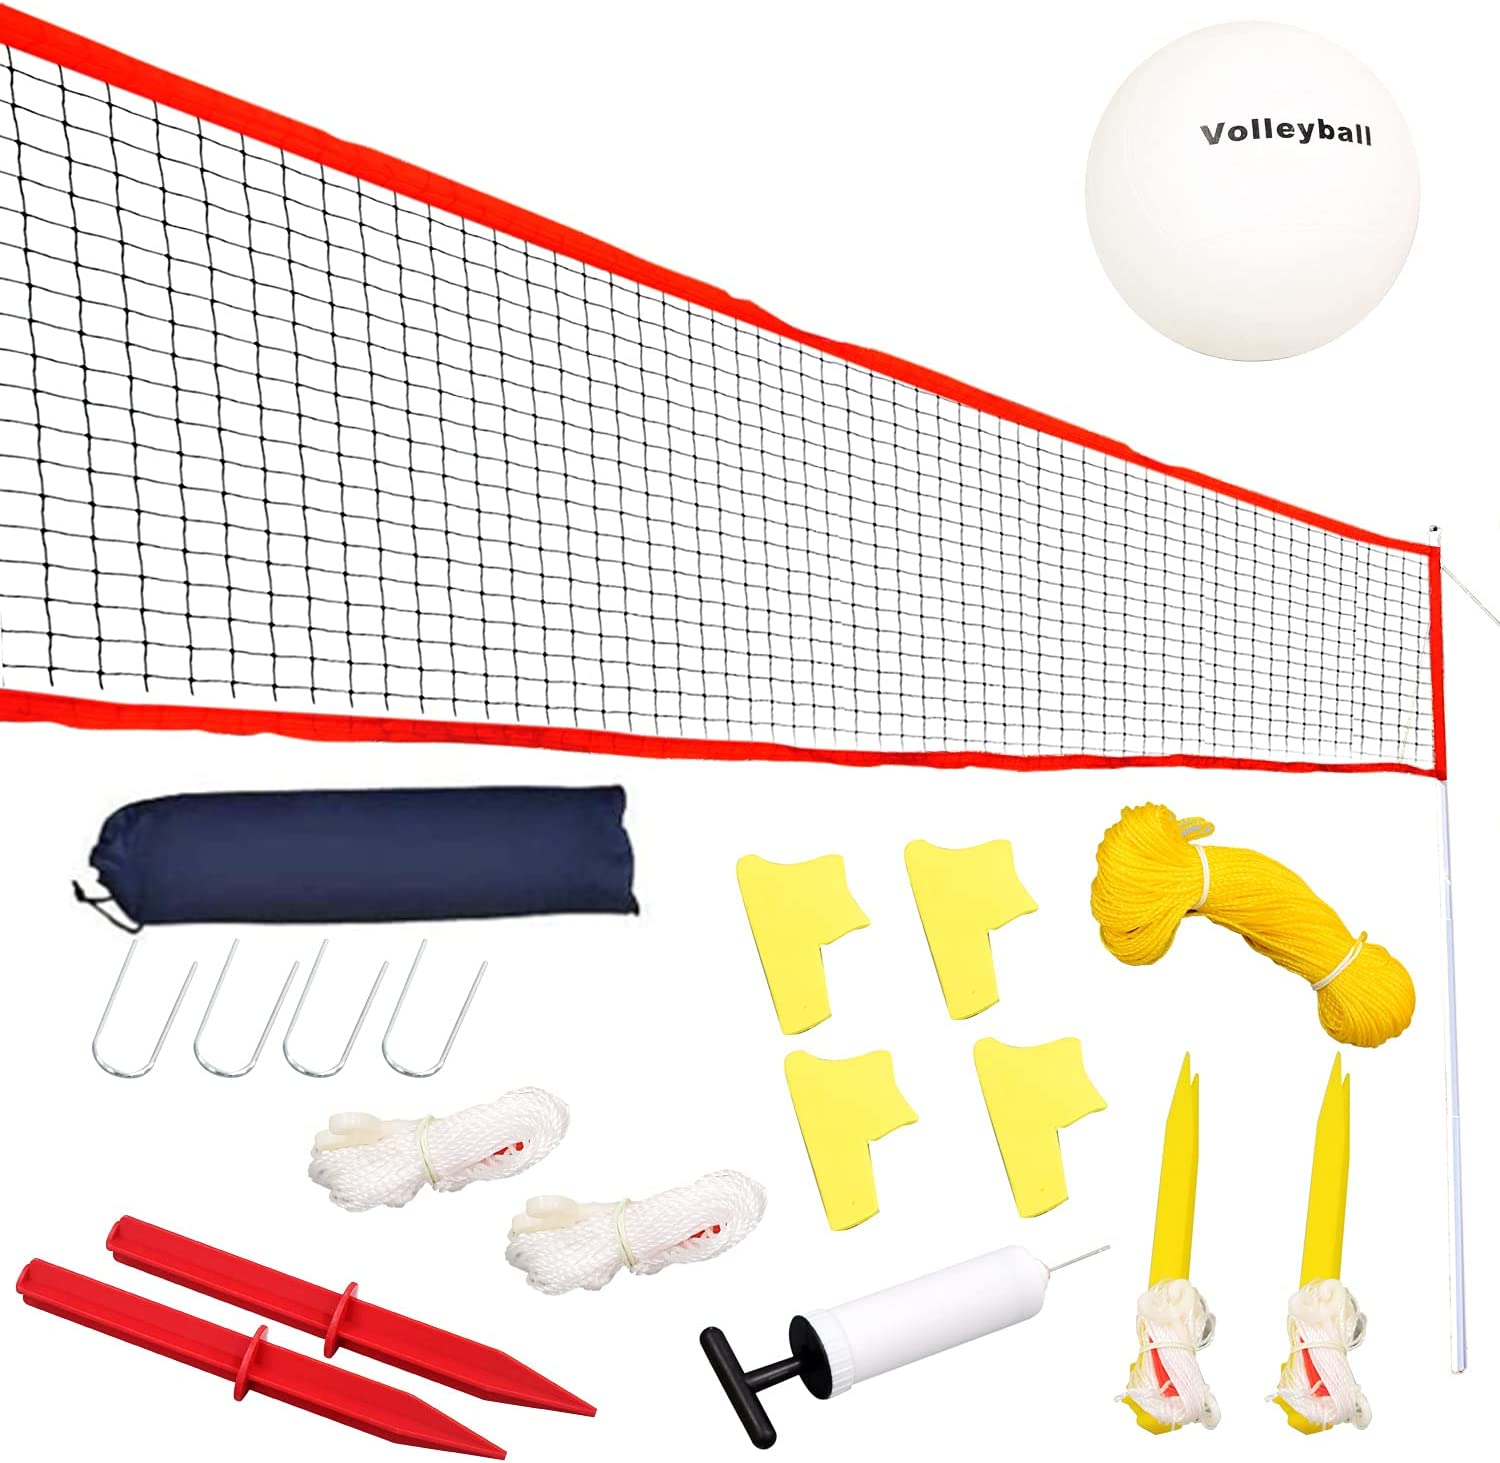 ALPIKA Large 20ft Height-Adjustable Volleyball Net, Portable Badminton/Tennis Net Set, Combo Set Games -Easy Setup Nylon Sports Net with Carry Bag for Beach/Lawn, Backyard/Party : Sports & Outdoors